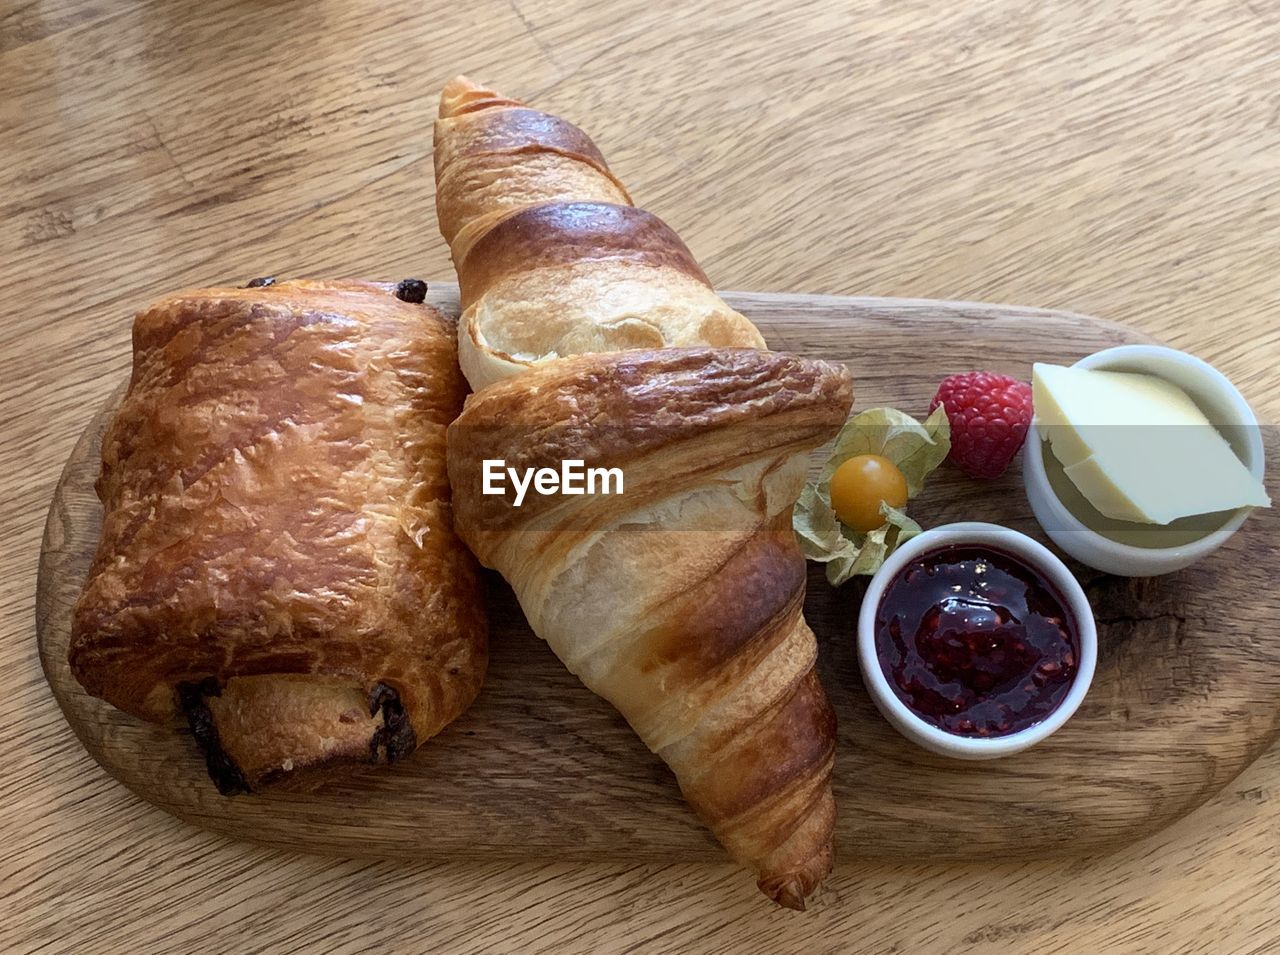 food and drink, food, freshness, ready-to-eat, bread, table, still life, meal, meat, wood - material, close-up, indoors, no people, high angle view, healthy eating, serving size, breakfast, wellbeing, condiment, fruit, snack, temptation, french food, serving dish